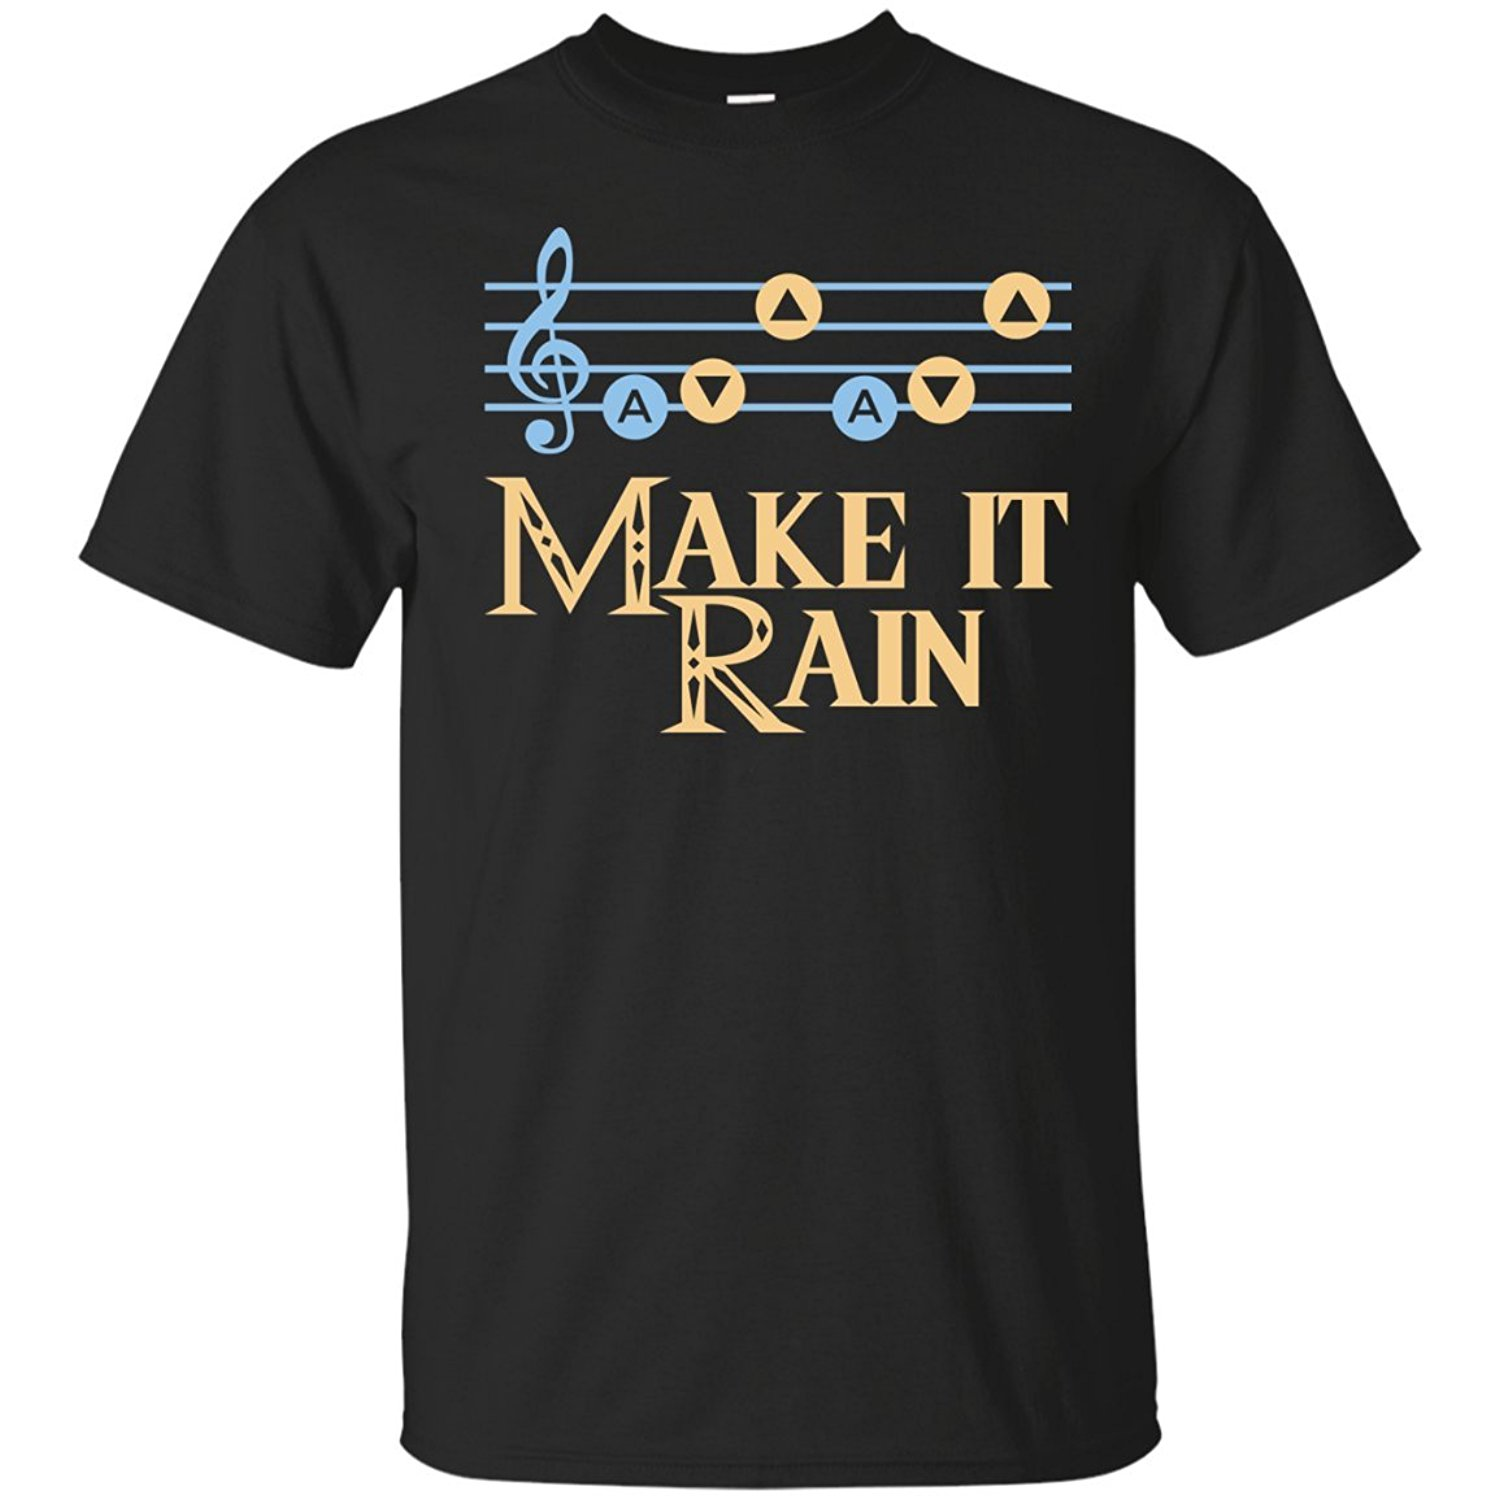 Make It Rain Song of Stroms No Sword T-Shirt Interesting Classic Tops Tee Shirts Men T Shirt Lowest Price 100 % Cotton